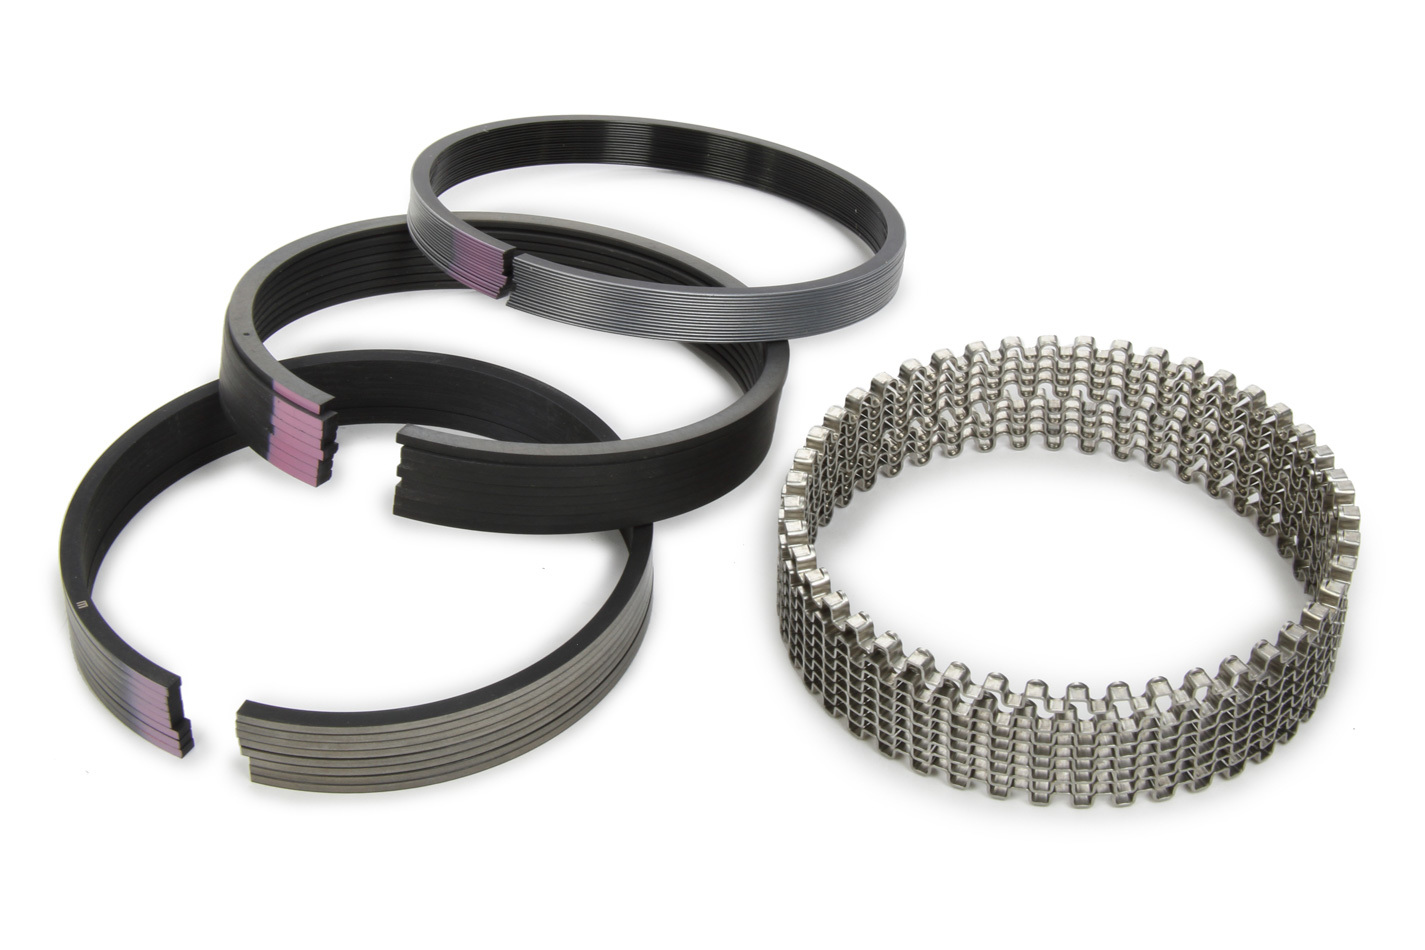 Michigan 77 40564CP.030 Piston Rings, Original, 4.030 in Bore, 5/64 x 5/64 x 3/16 in Thick, Standard Tension, Moly, 8 Cylinder, Kit